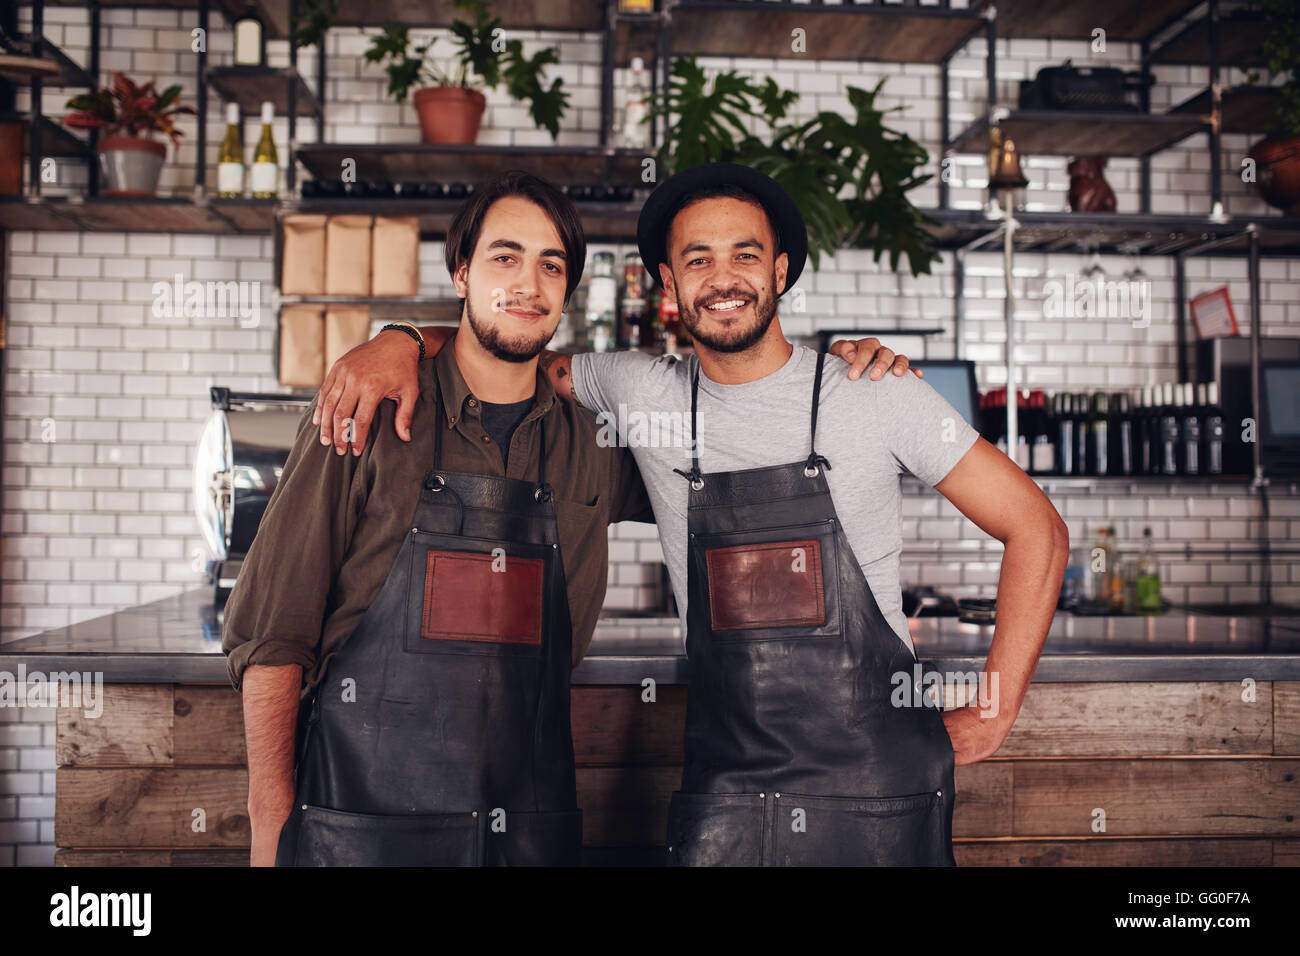 Portrait of two young coffee shop owners standing together at the bar counter and looking at camera. - Stock Image